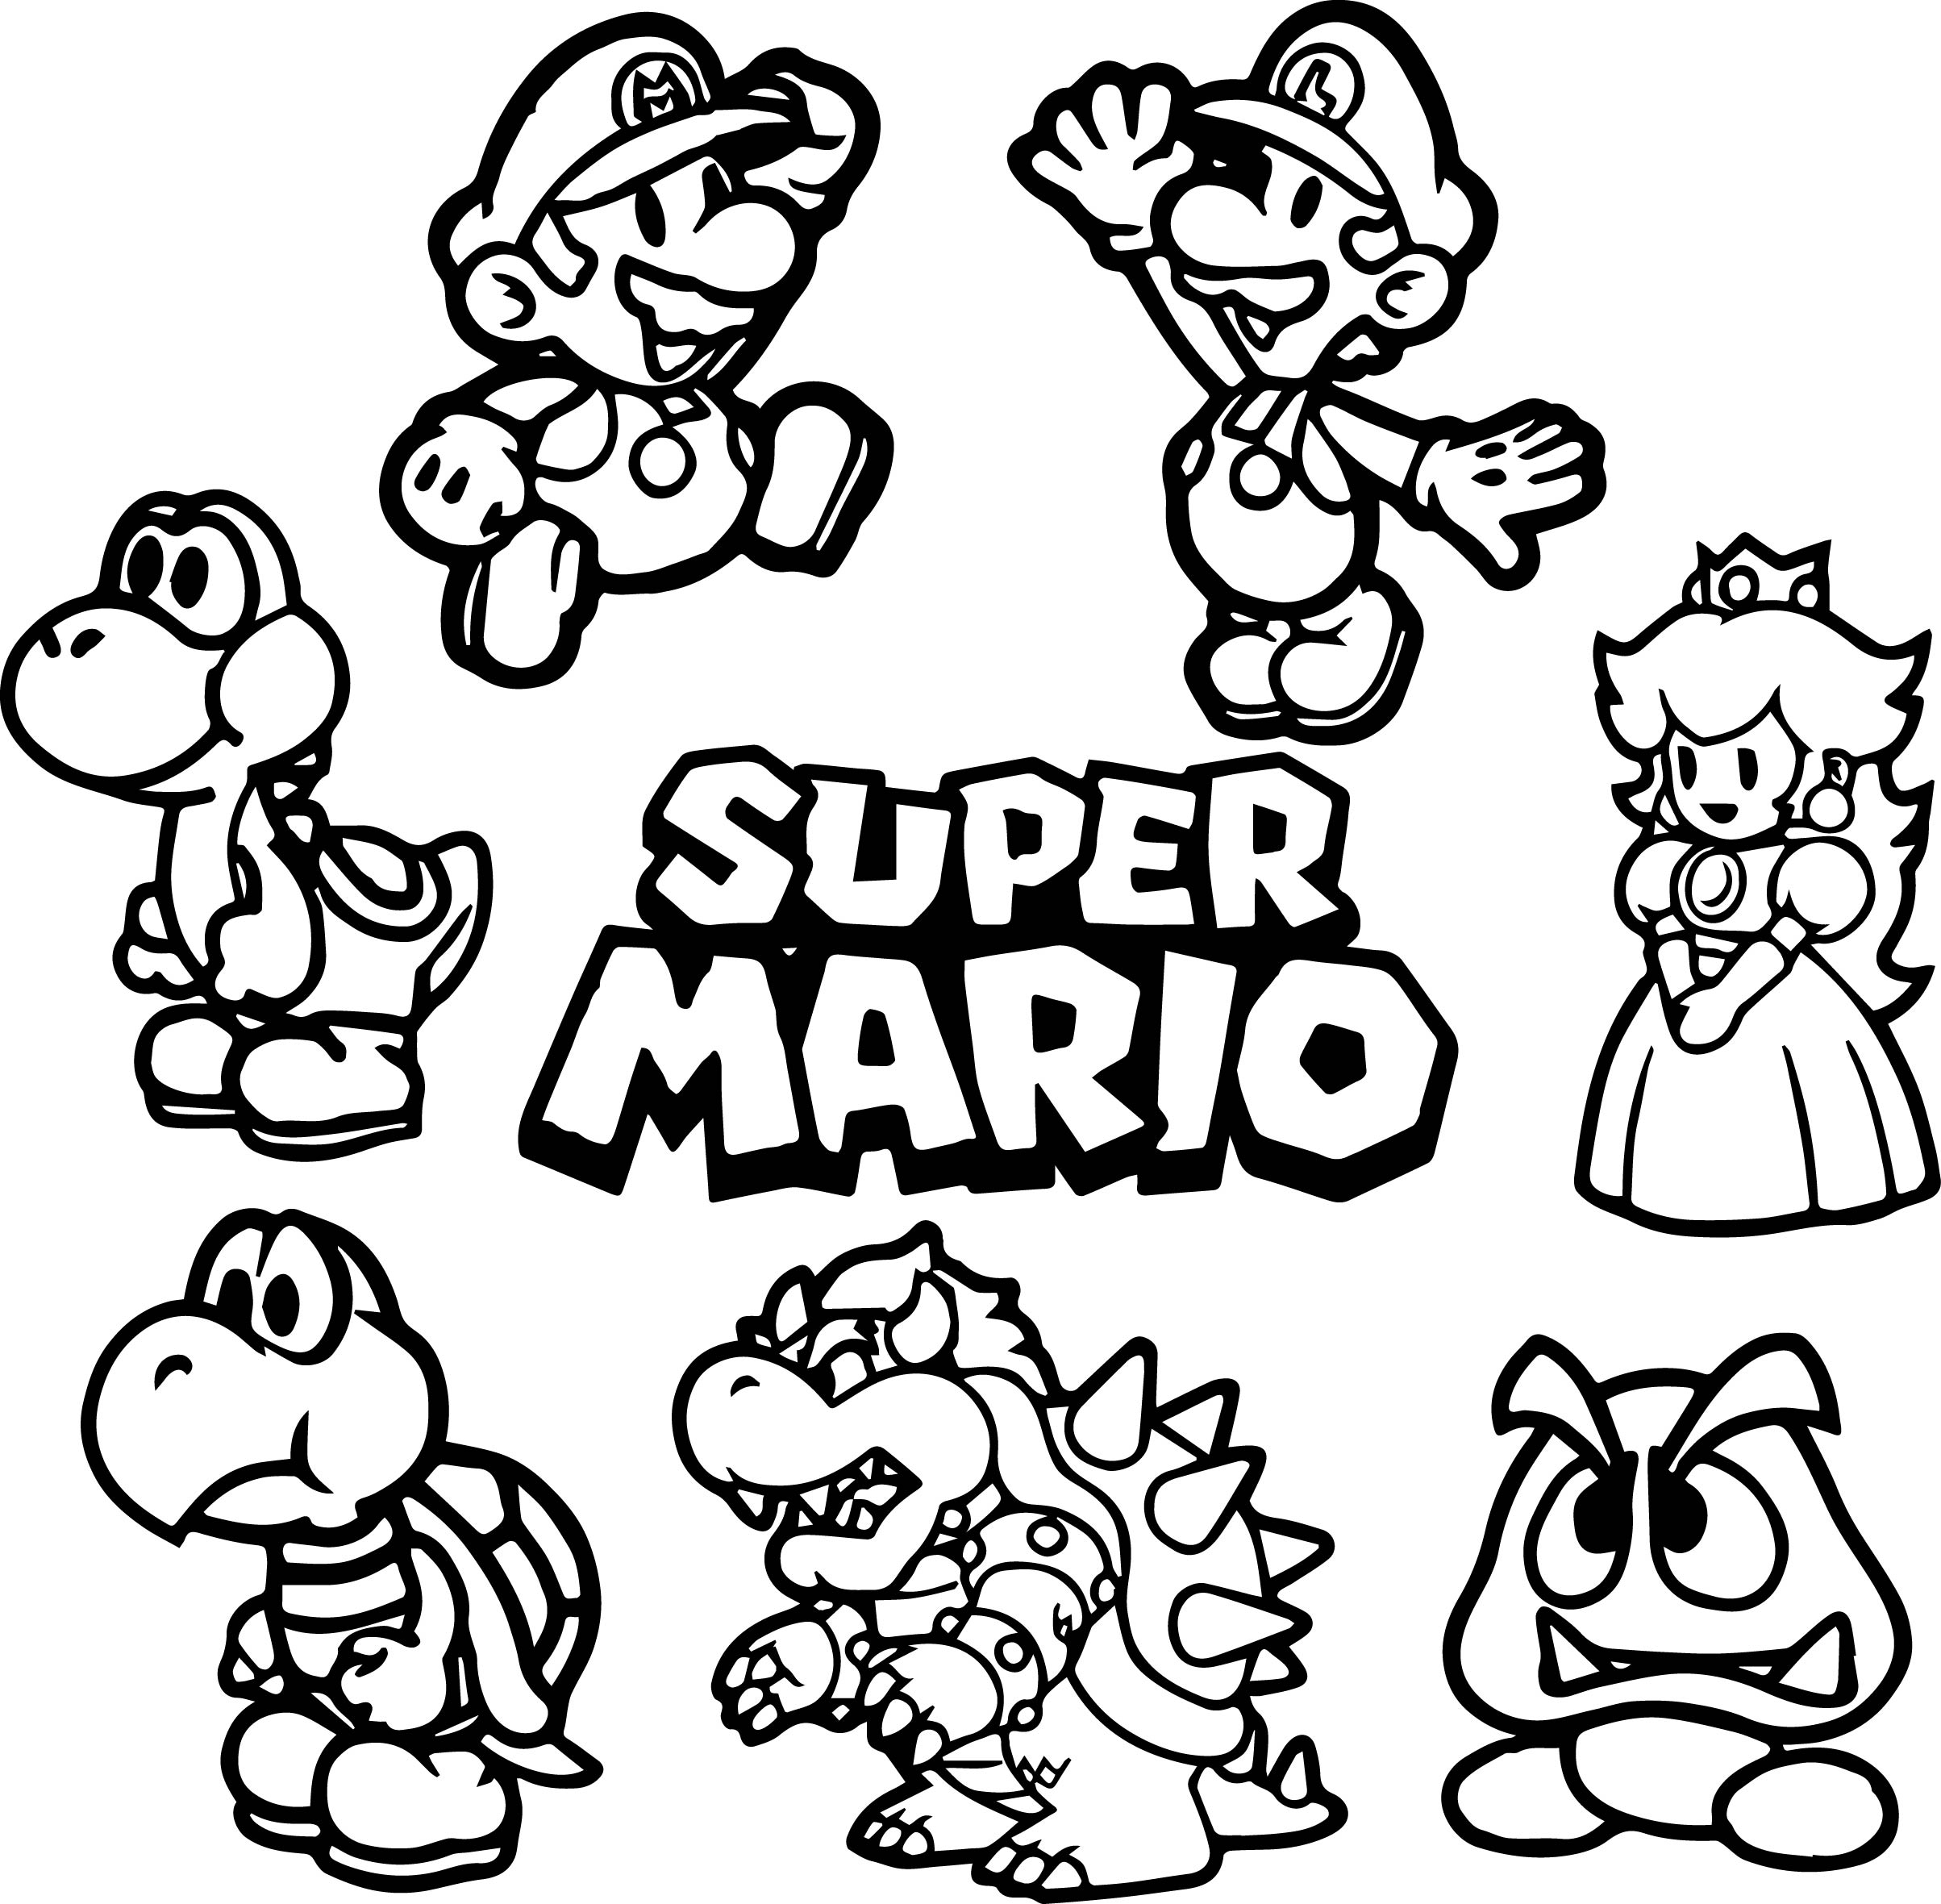 Mario Coloring Pages To Print Coloring Ideas Coloring Ideas Mario And Luigi Sheets All Super